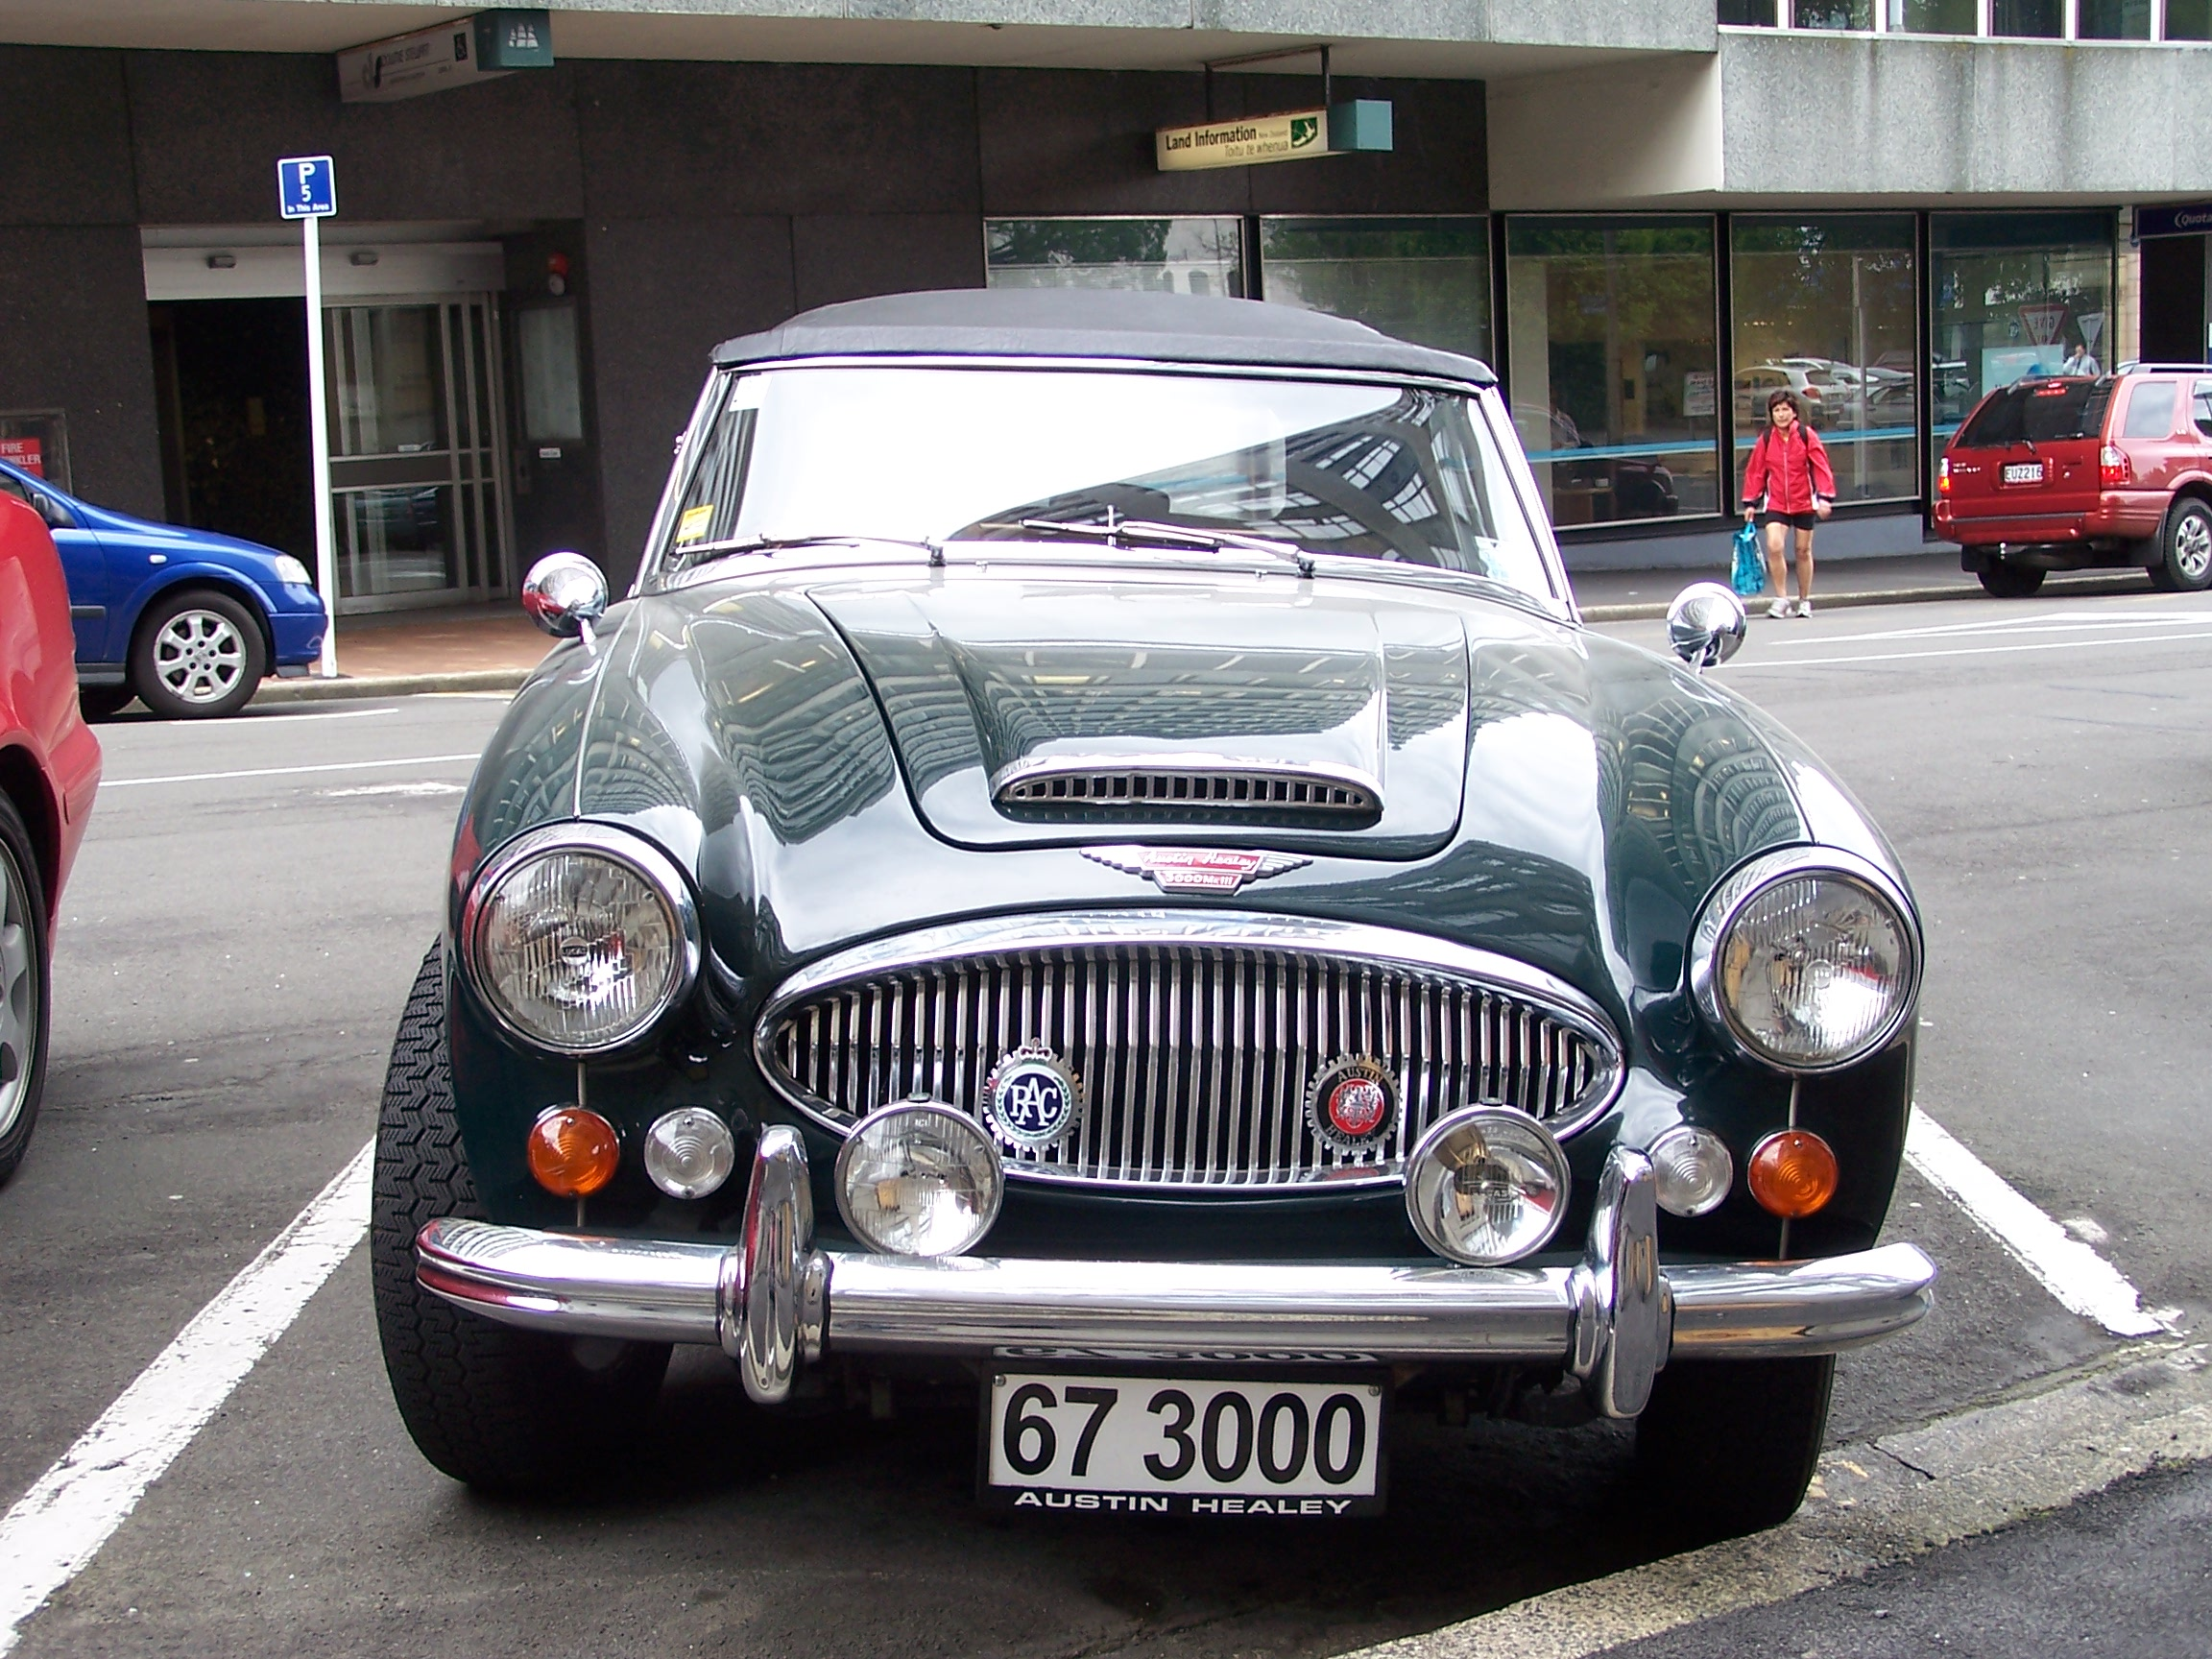 Austen Heakley Mk III 1967, Car, Dunedin, Healey, Nz, HQ Photo